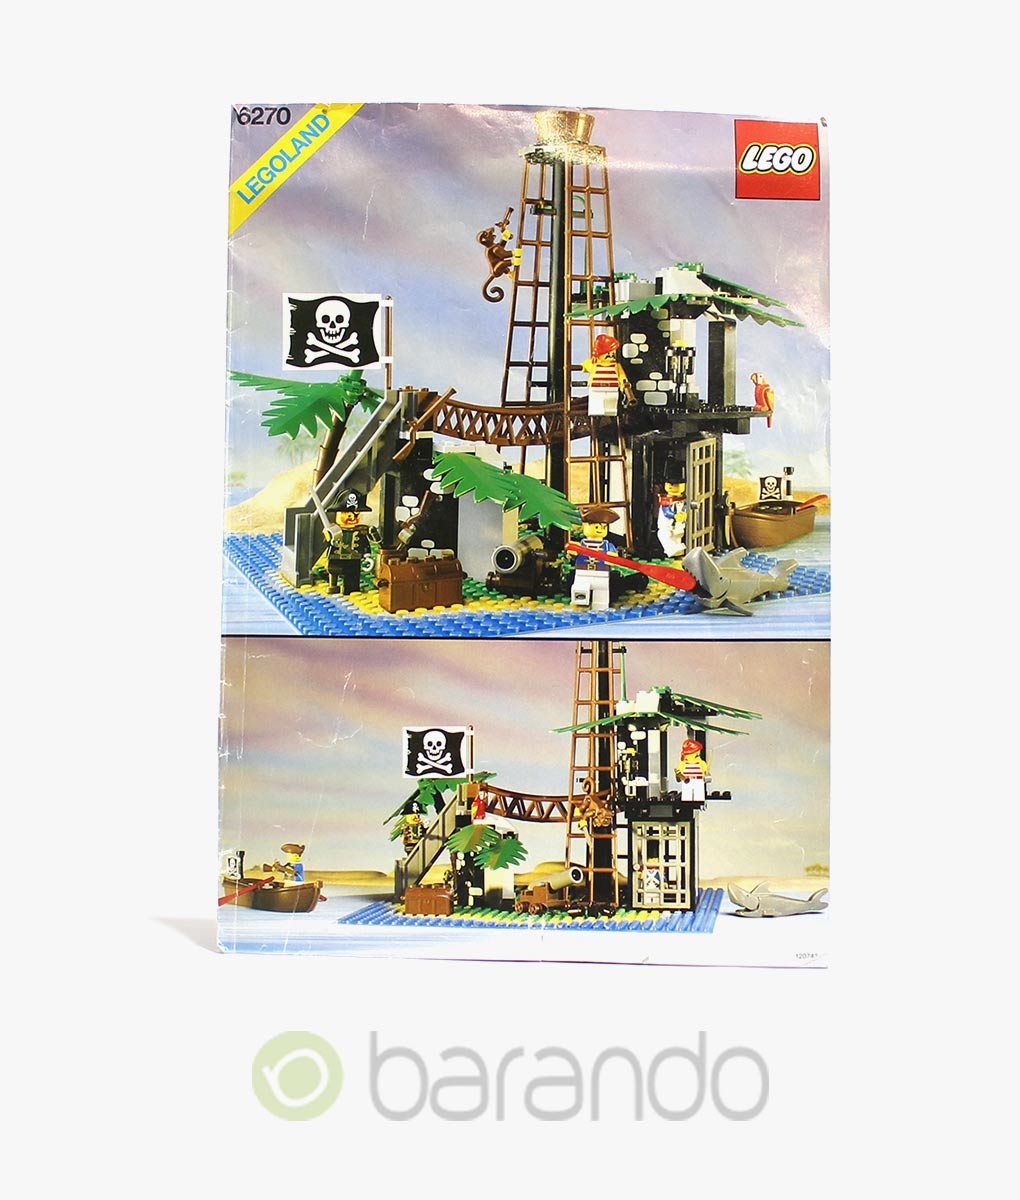 LEGO Pirates 6270 Pirateninsel Set kaufen